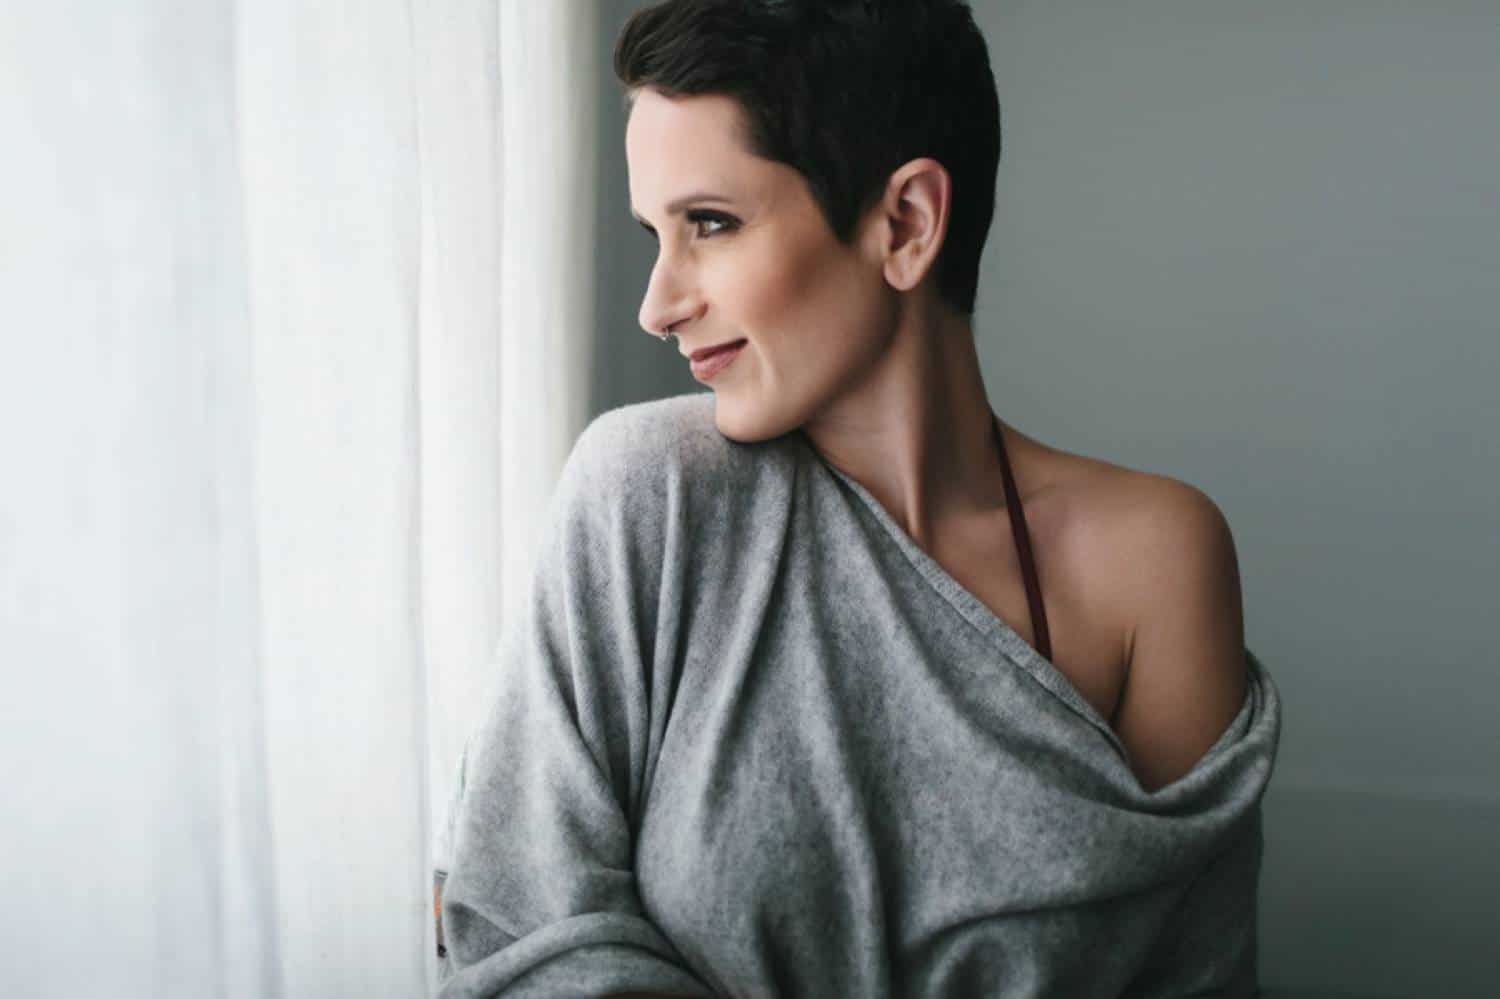 A woman with a brunette pixie cut, wearing a gray cashmere sweater that has slipped off one shoulder, looks over her shoulder out the window with a slight smile on her face. Learn how to take boudoir photos for clothed clients by reading the ShootProof blog!